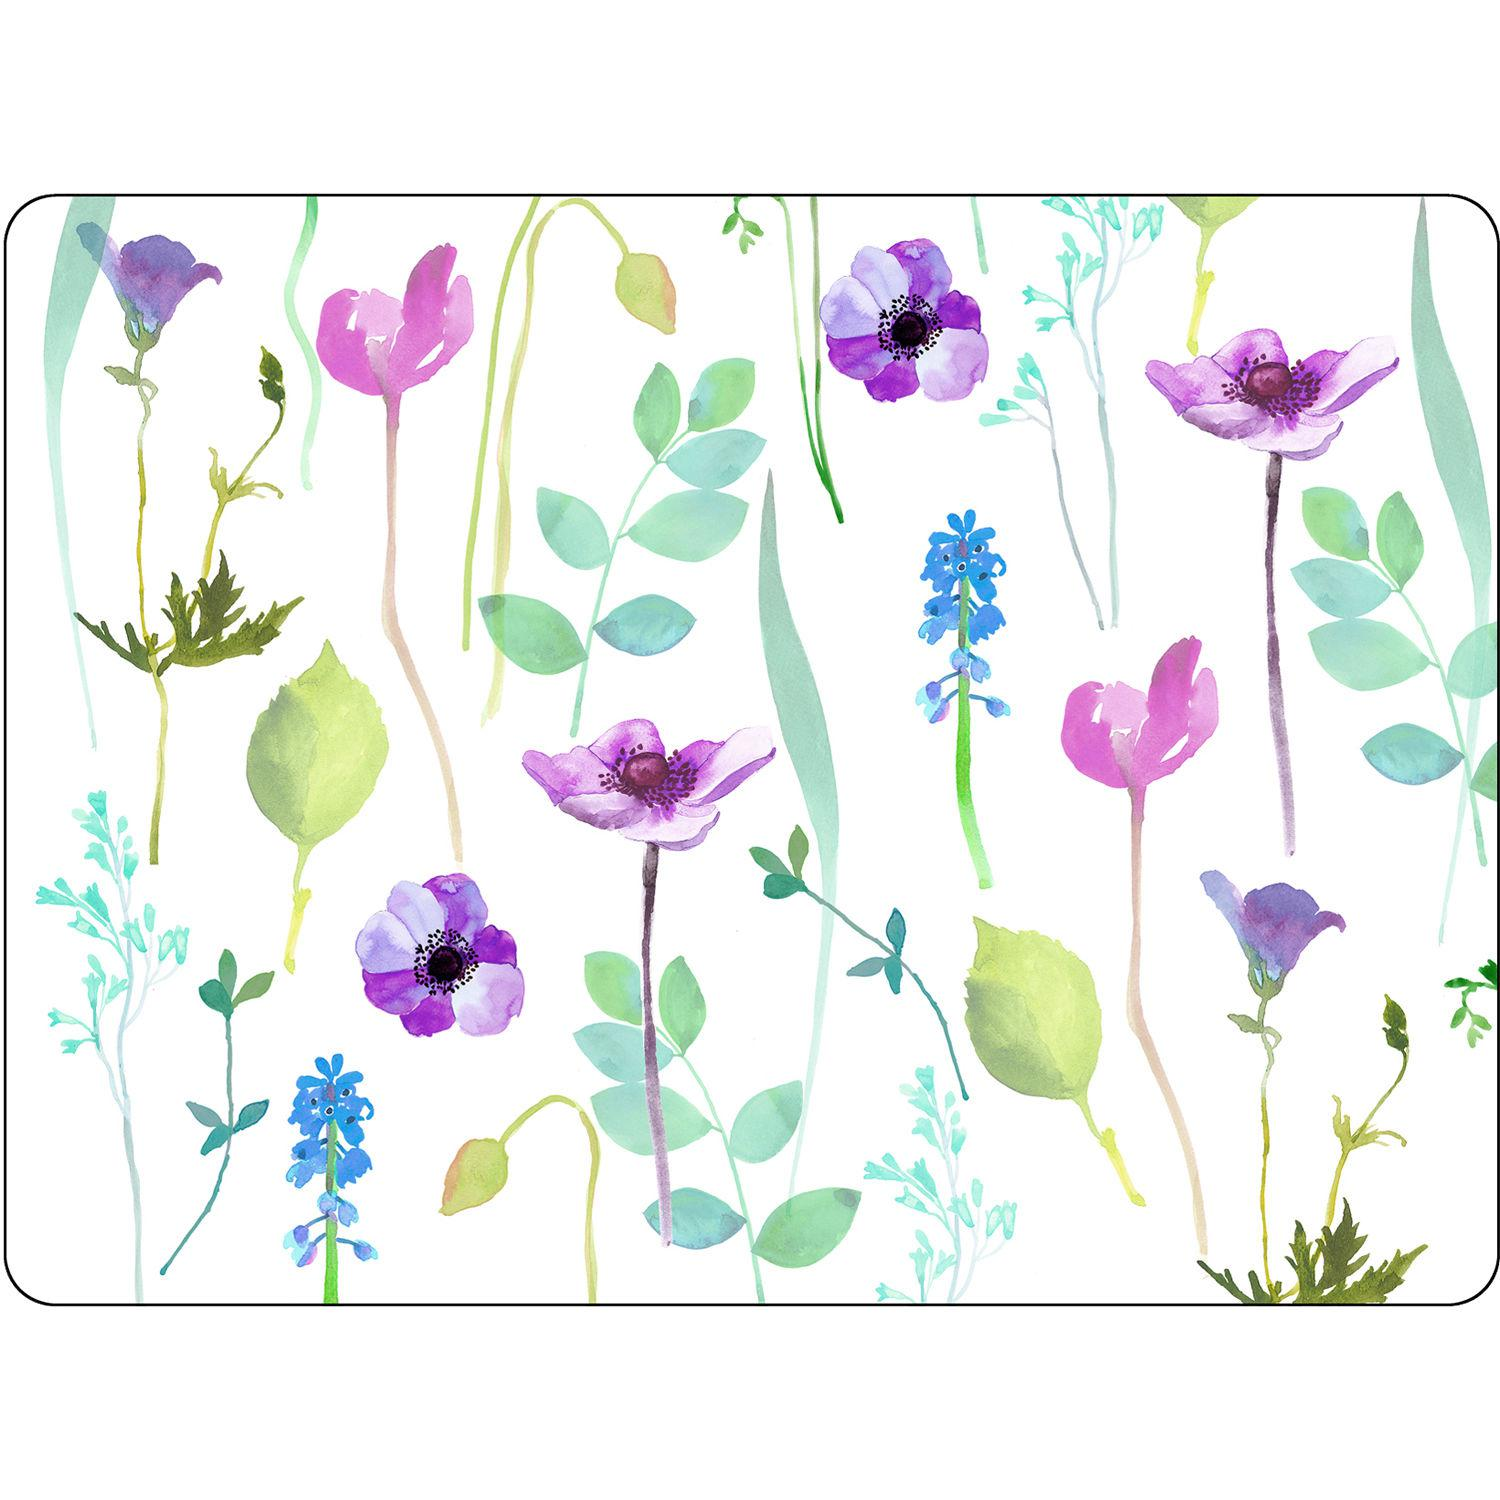 Buy Portmeirion Water Garden Placemats White Set of 6 at Louis Potts